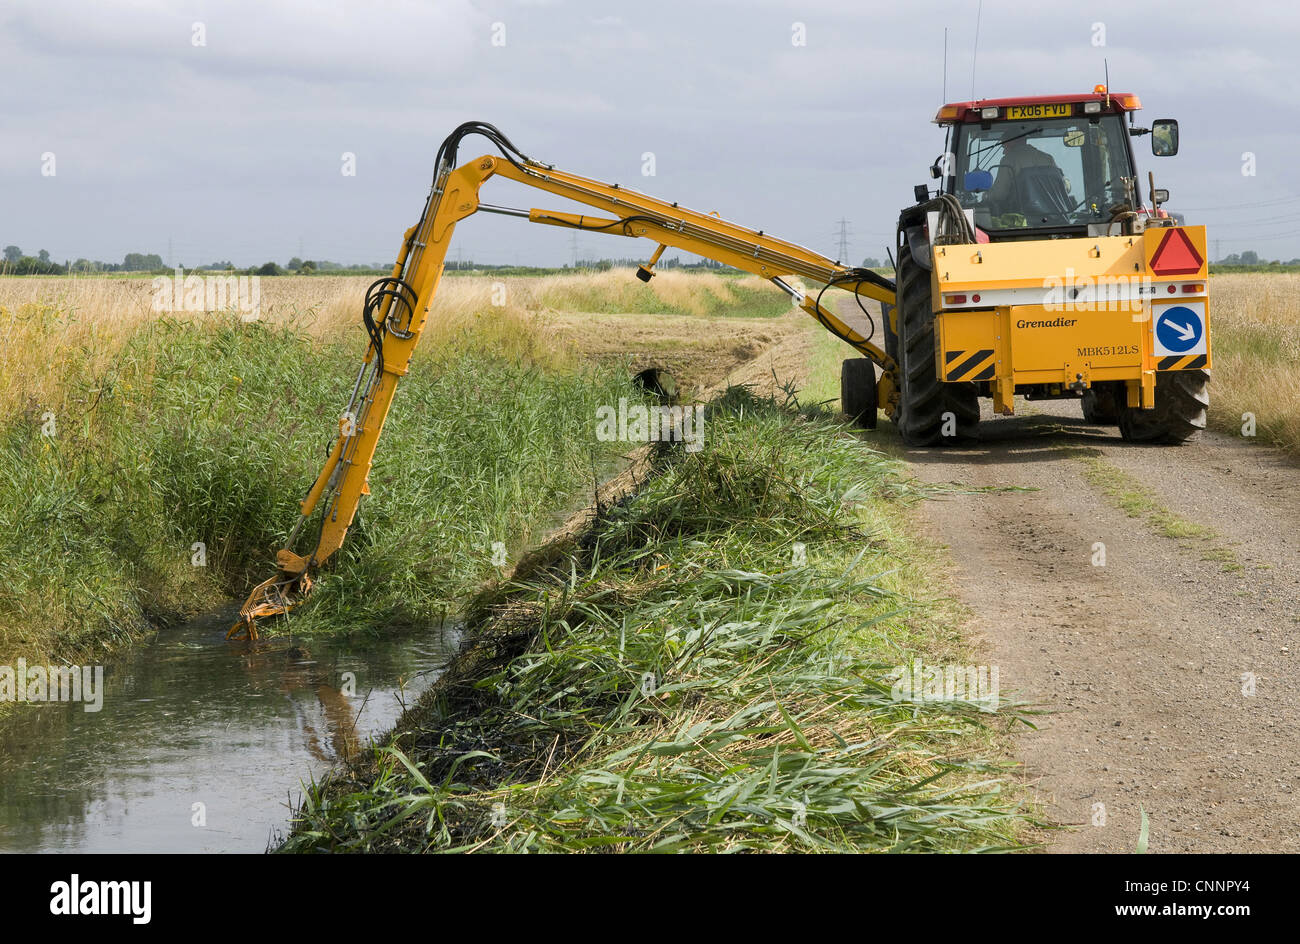 Tractor Bucket Lift Arms : Tractor boom arm clearing reed overgrown dyke countryside